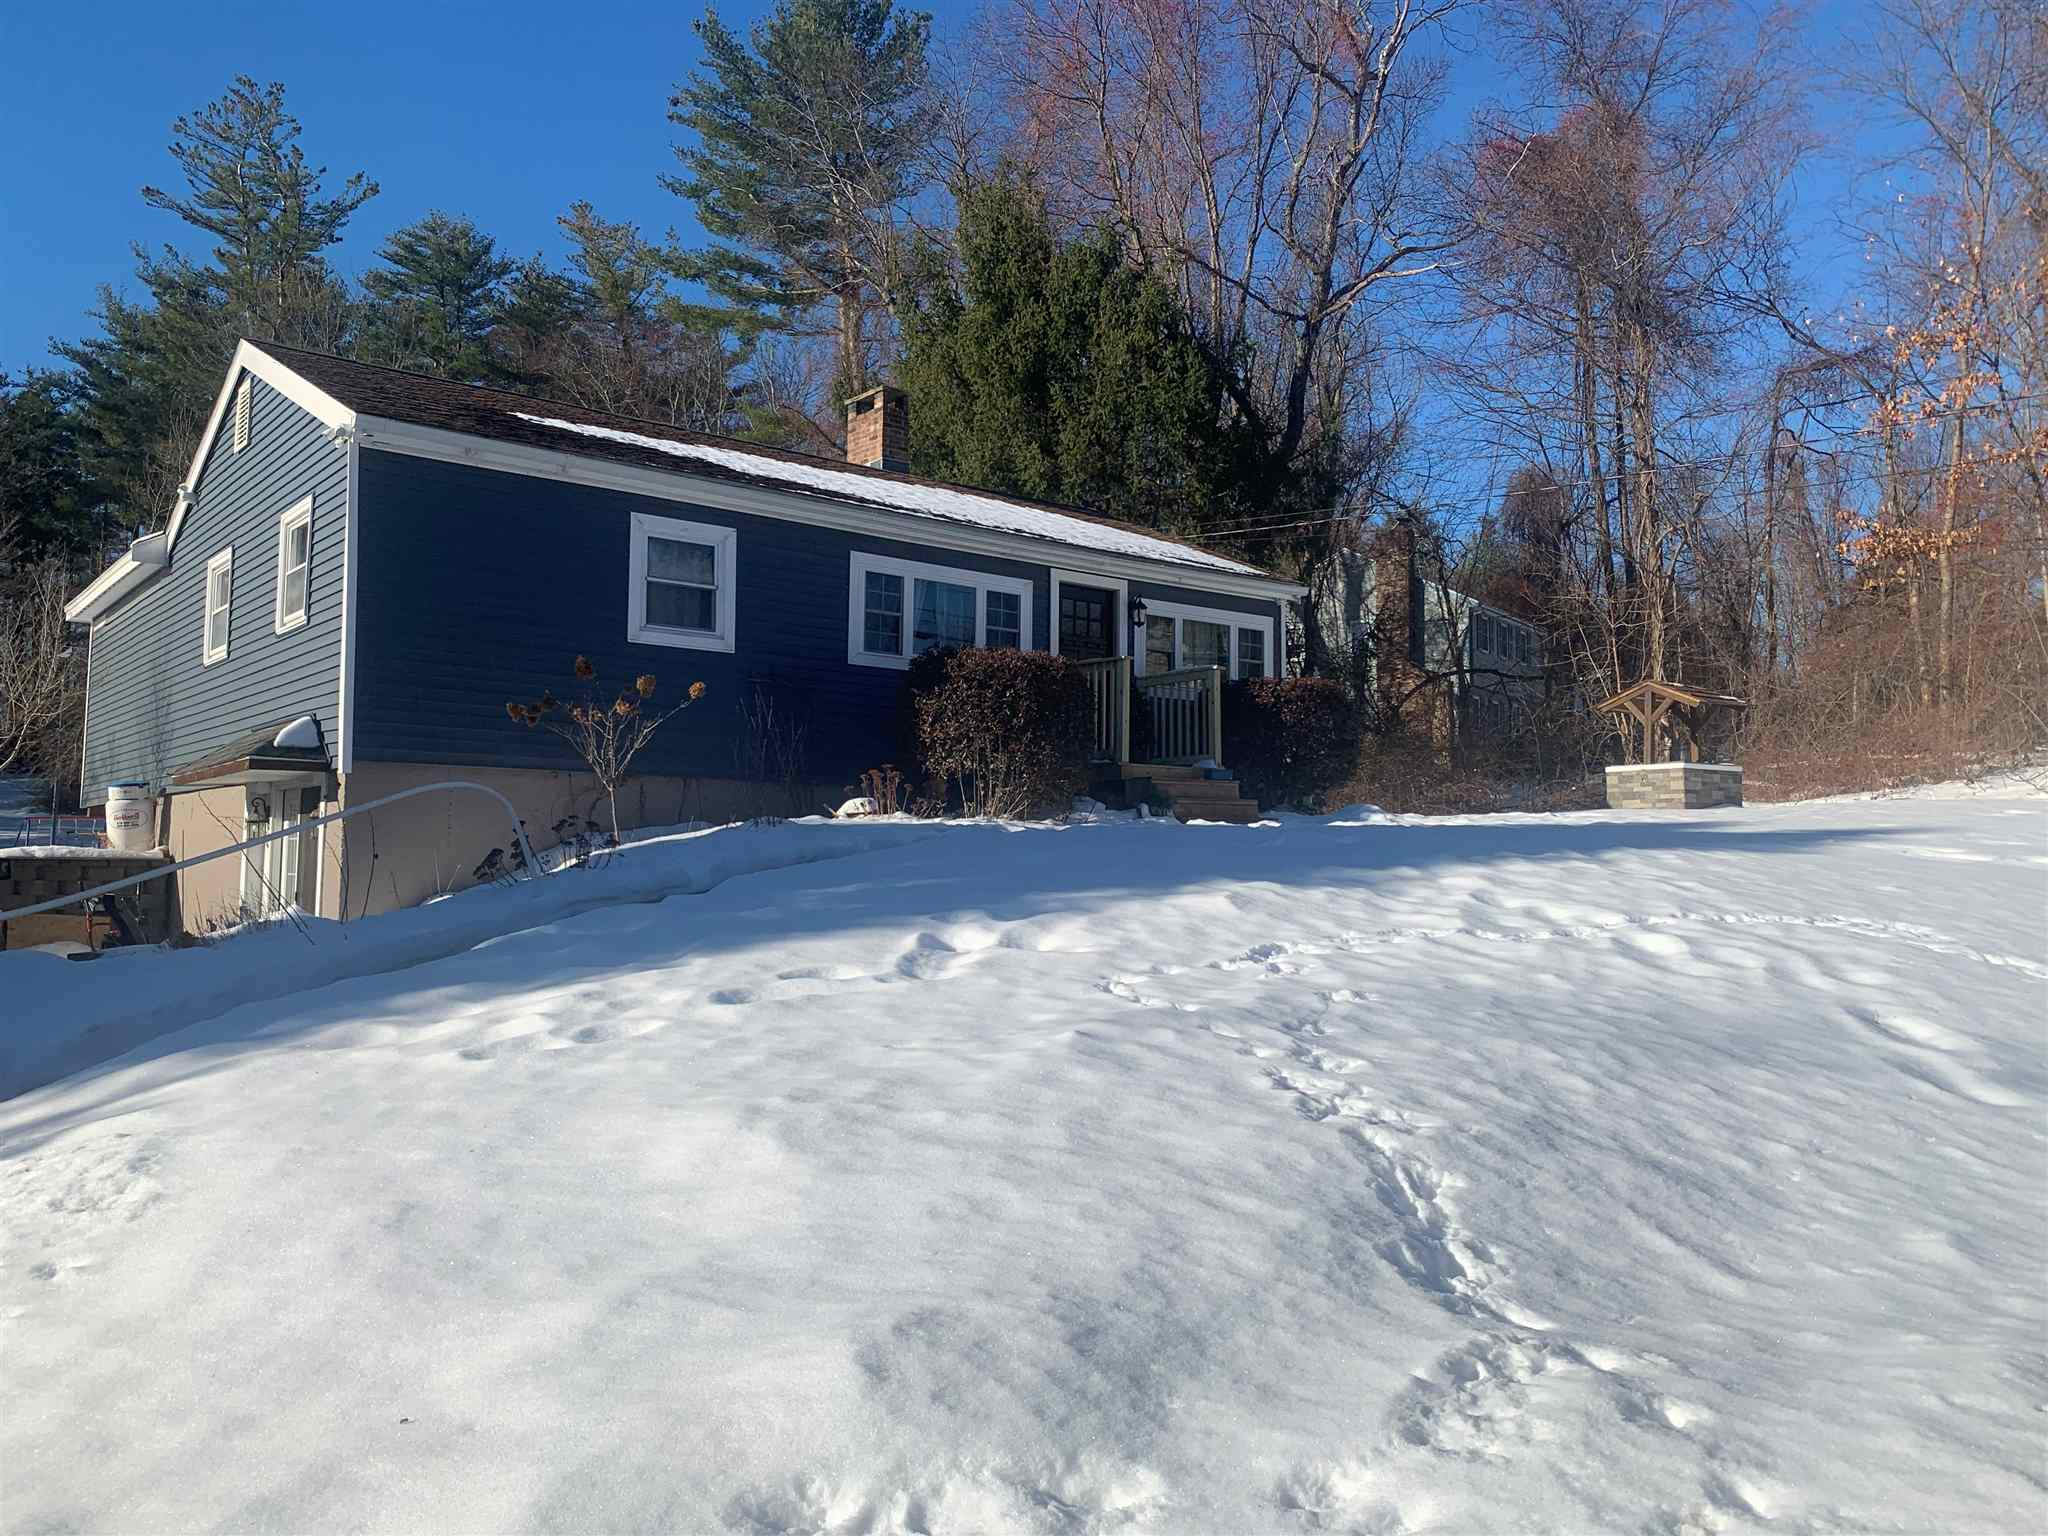 MLS 4842450: 26 Stage Road, Atkinson NH